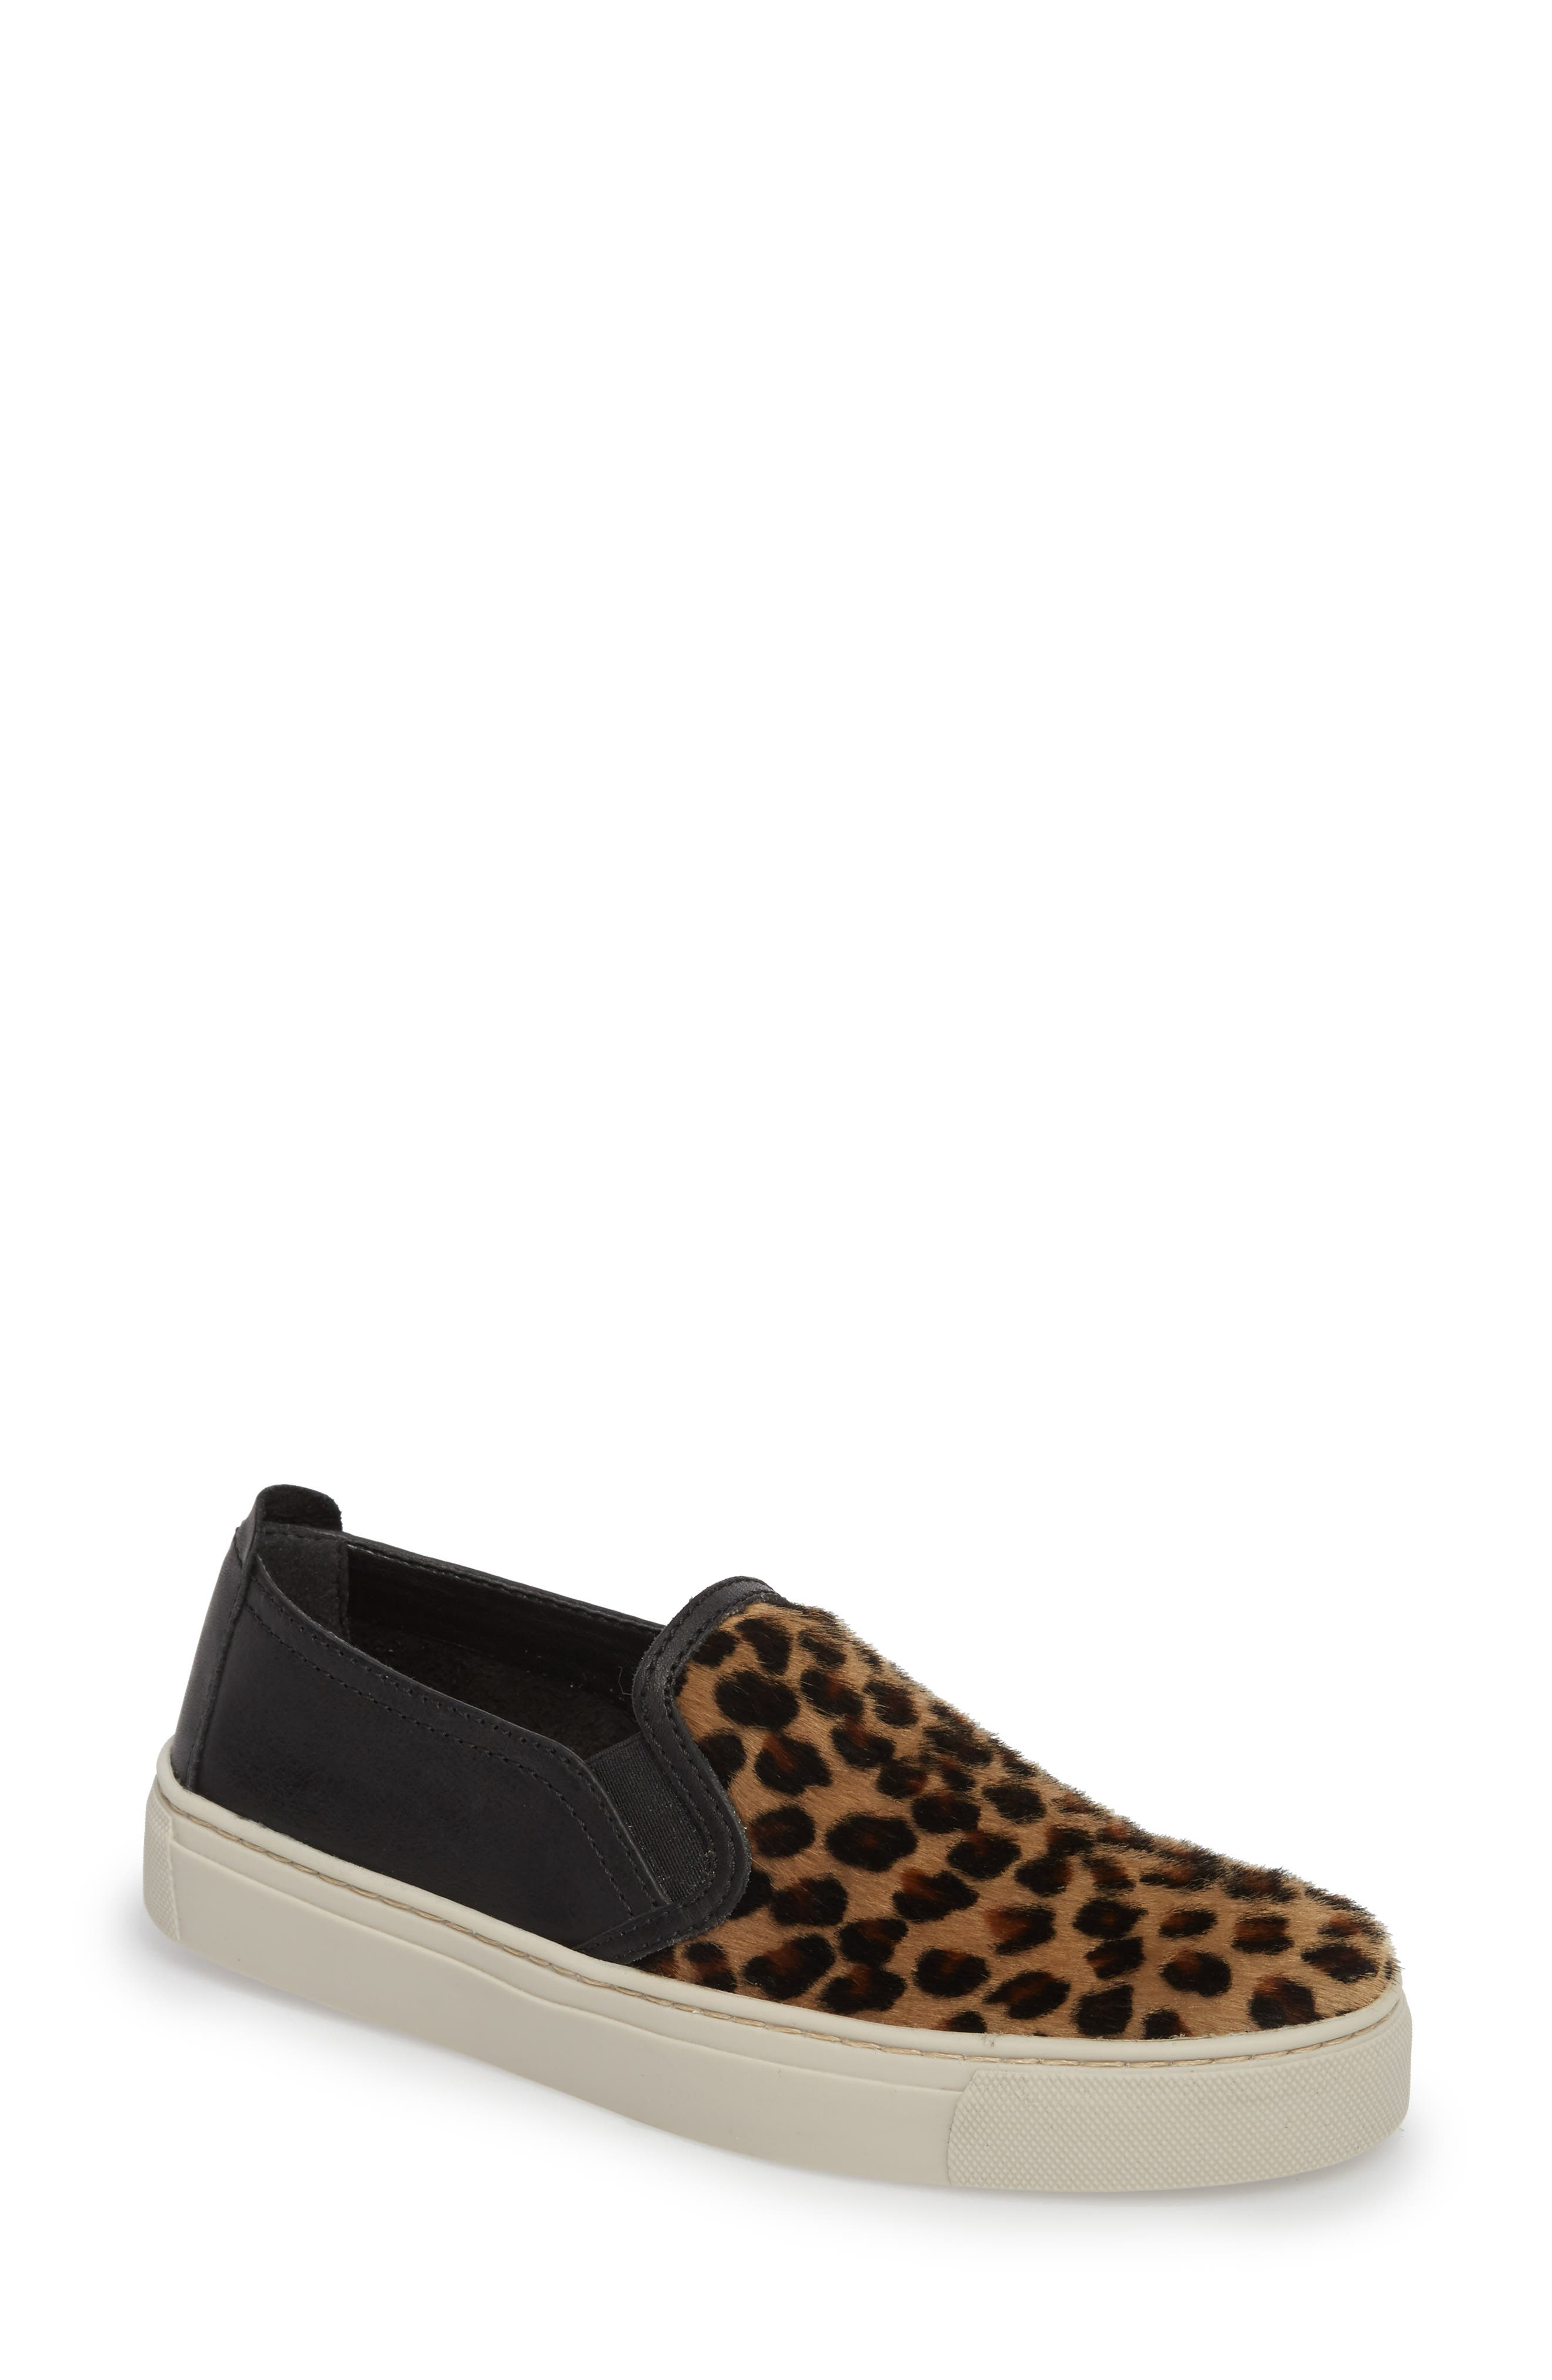 Sneak About Slip-On Sneaker,                         Main,                         color, 001